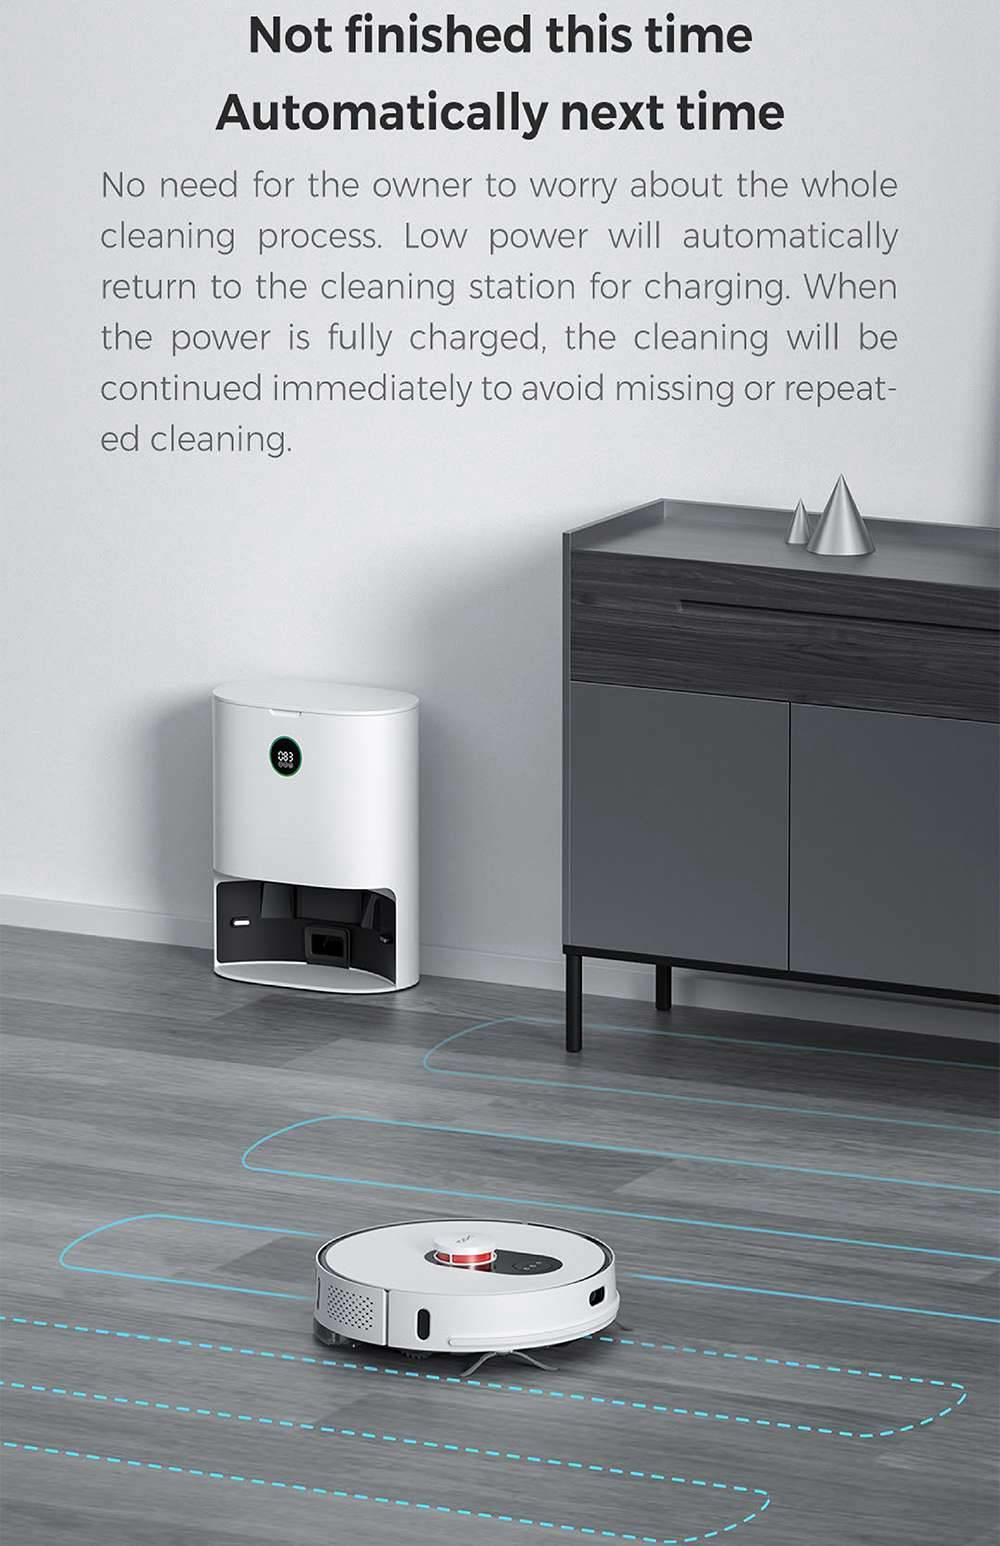 Xiaomi ROIDMI EVE Plus Robot Vacuum Cleaner with Intelligent Dust Collector Integrated Sweeping and Mopping 2700Pa Powerful Suction LDS Laser Navigation 5200mAh Battery 300ml Electric Water Tank Mijia APP Control for Pets Hair, Carpets and Hard Floor